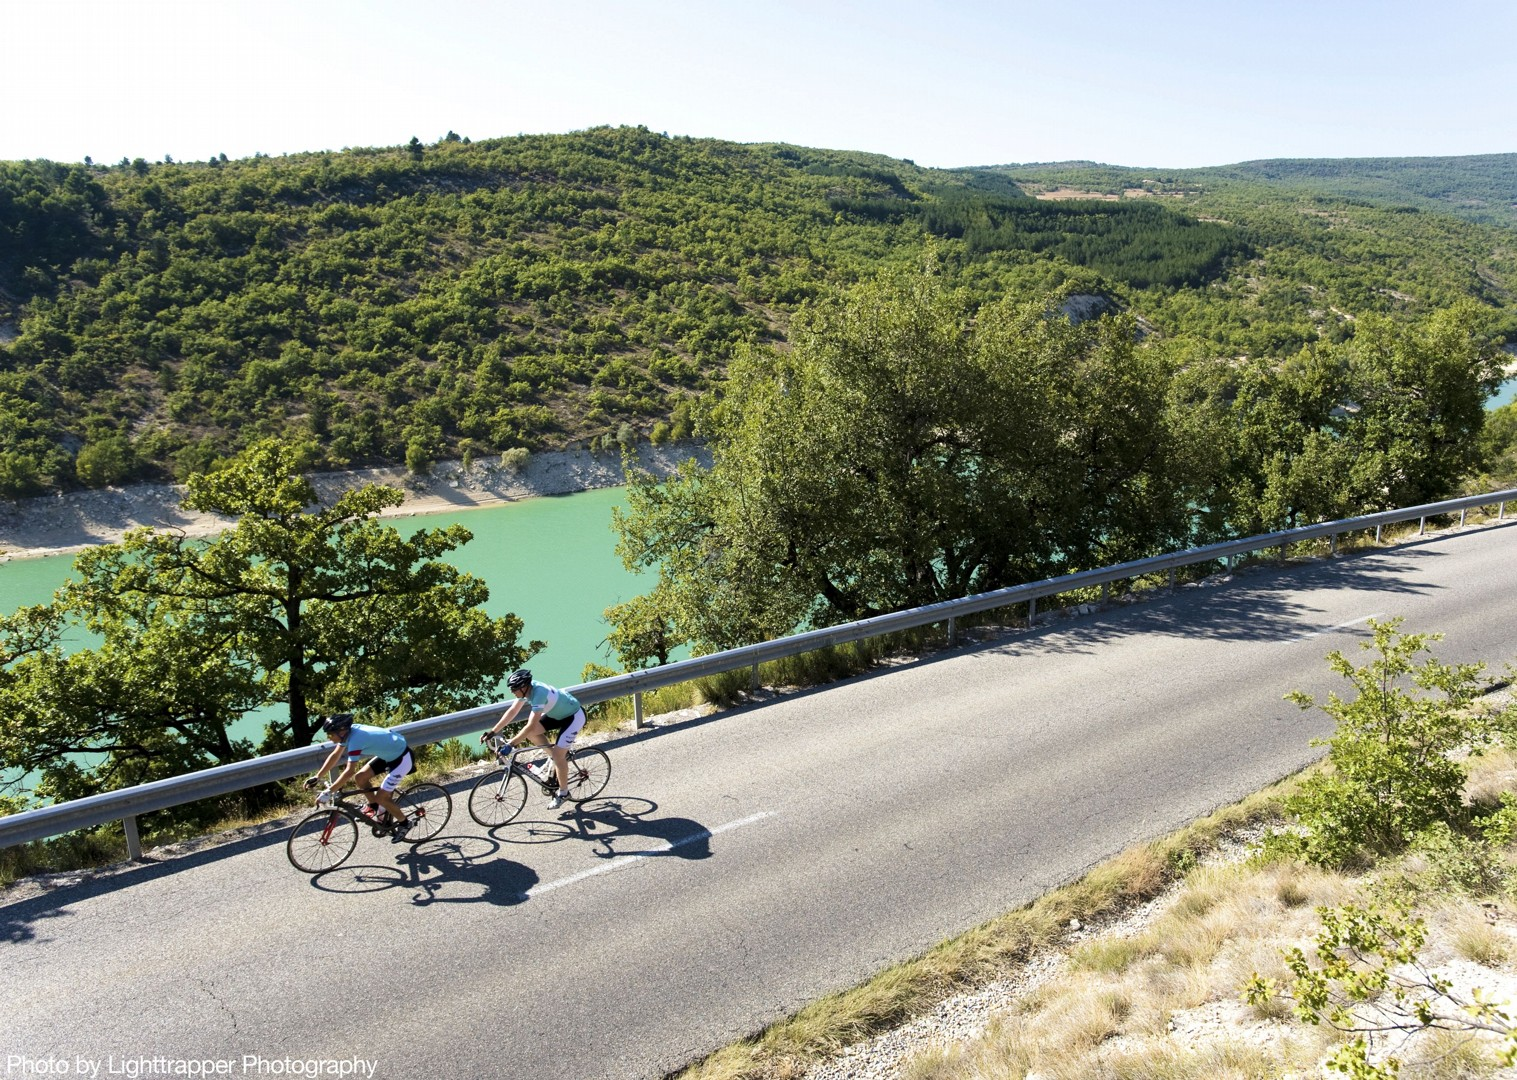 gorge-du-verdon-road-cycling-holiday-provence.jpg - France - Provence - Le Ventoux a Velo - Road Cycling